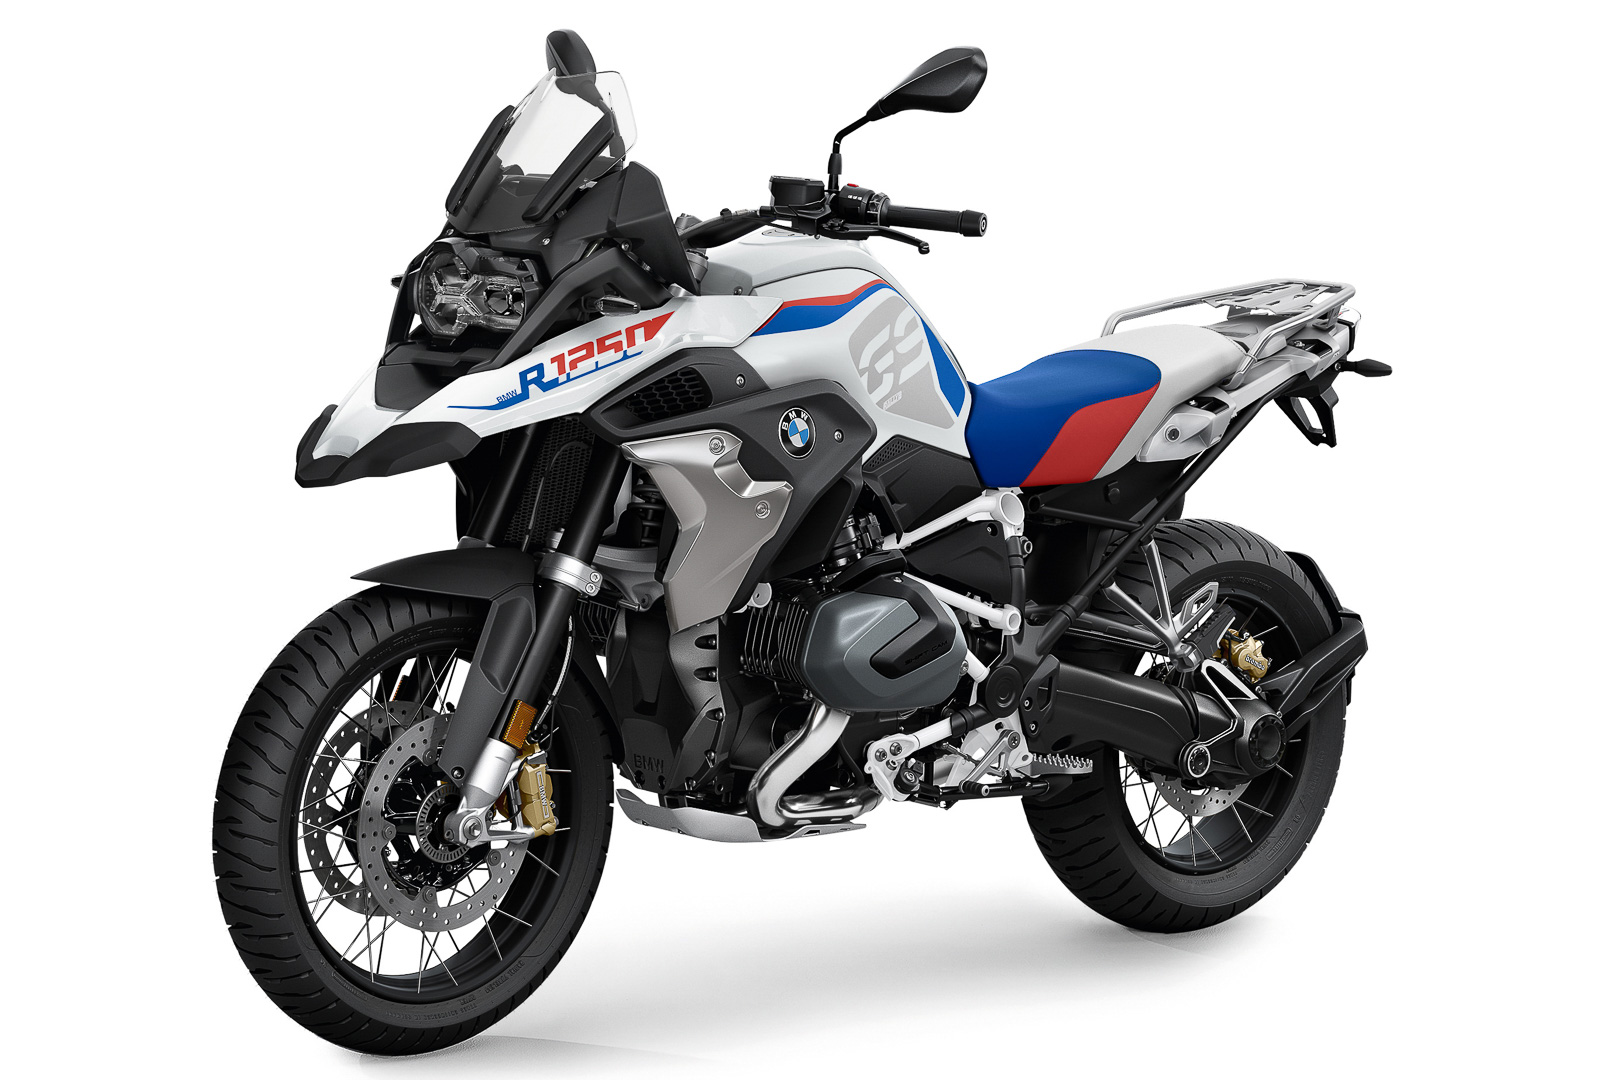 2022 BMW R 1250 GS First Look: Essential Fast Facts - UltimateMotorcycling.com